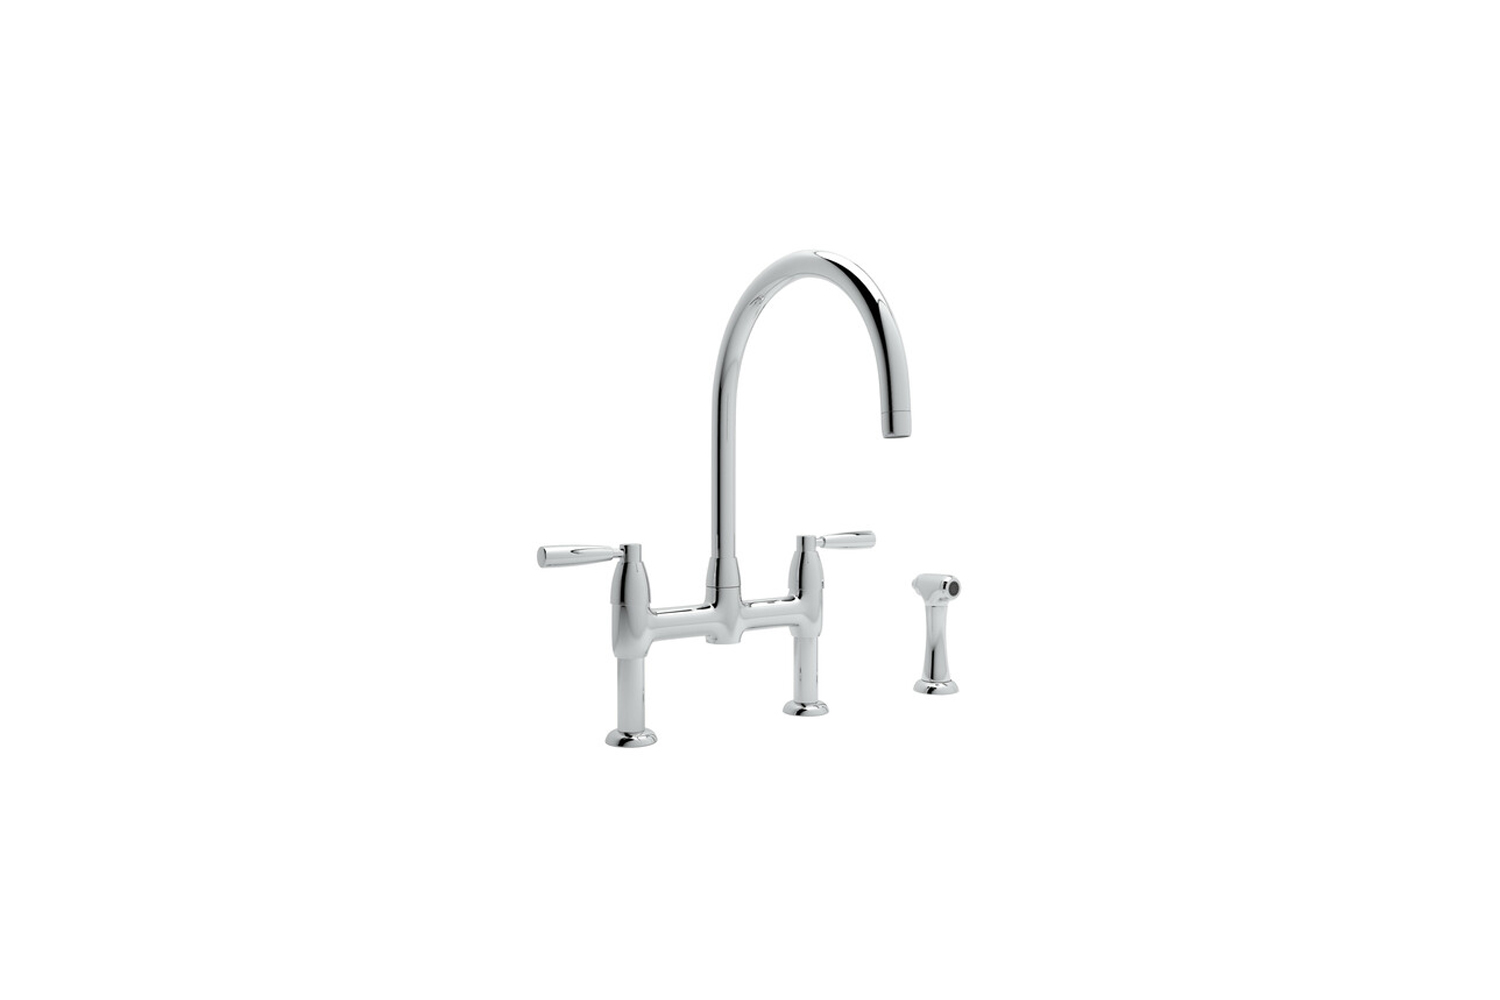 the owners bought their perrin & rowe holborn bridge kitchen faucet while o 16